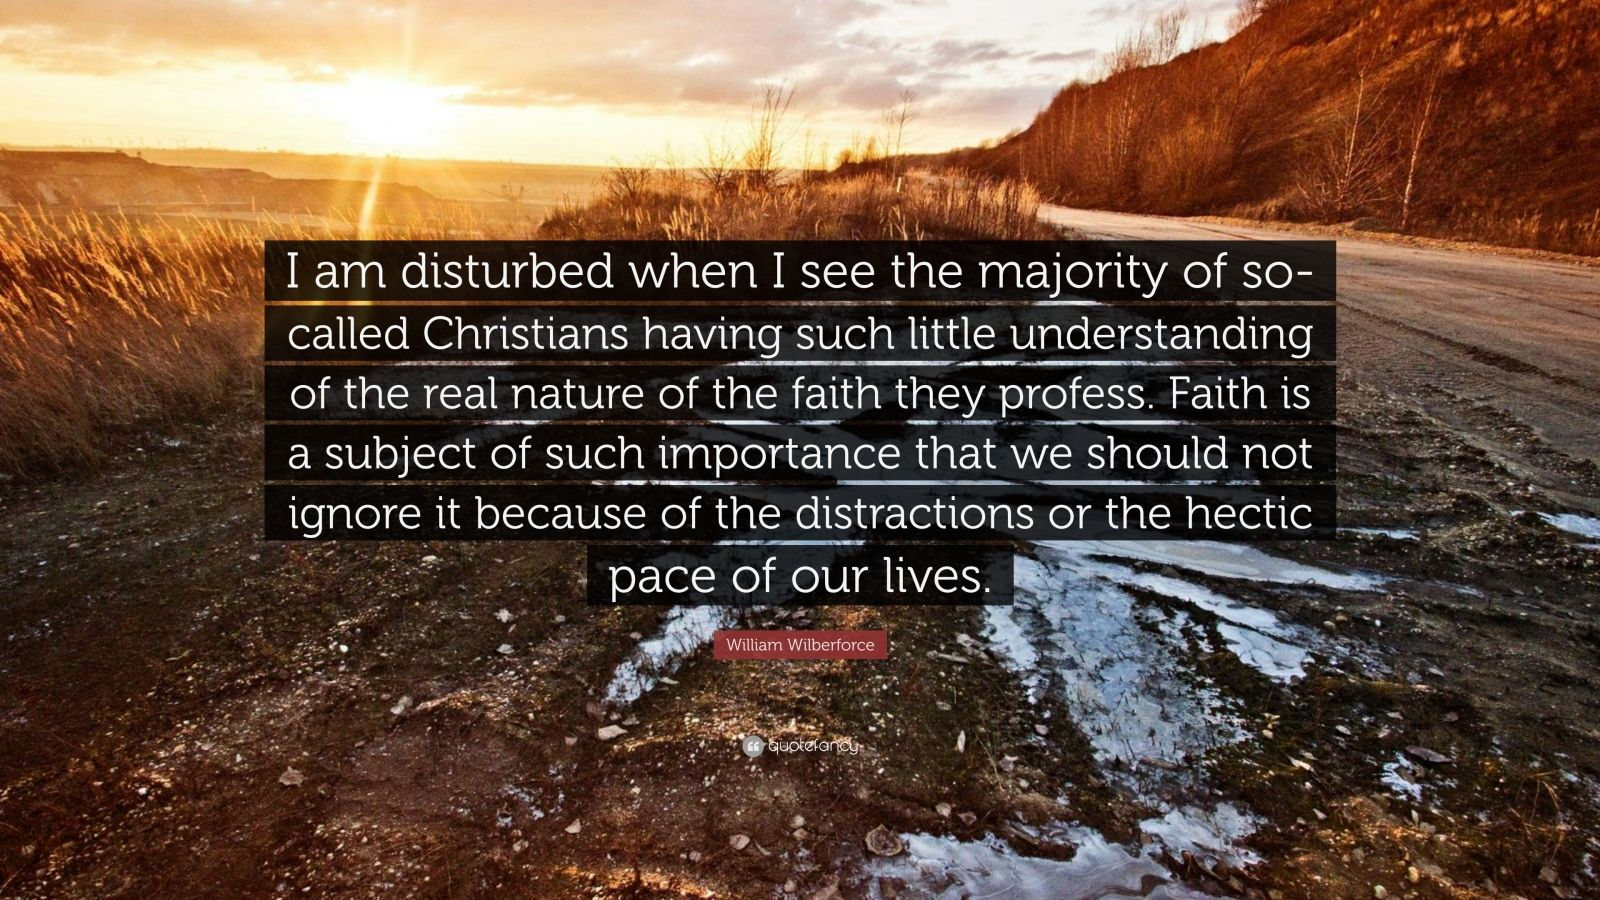 """William Wilberforce Quote: """"I am disturbed when I see the majority of so-called Christians having such little understanding of the real nature of the faith they profess. Faith is a subject of such importance that we should not ignore it because of the distractions or the hectic pace of our lives."""""""